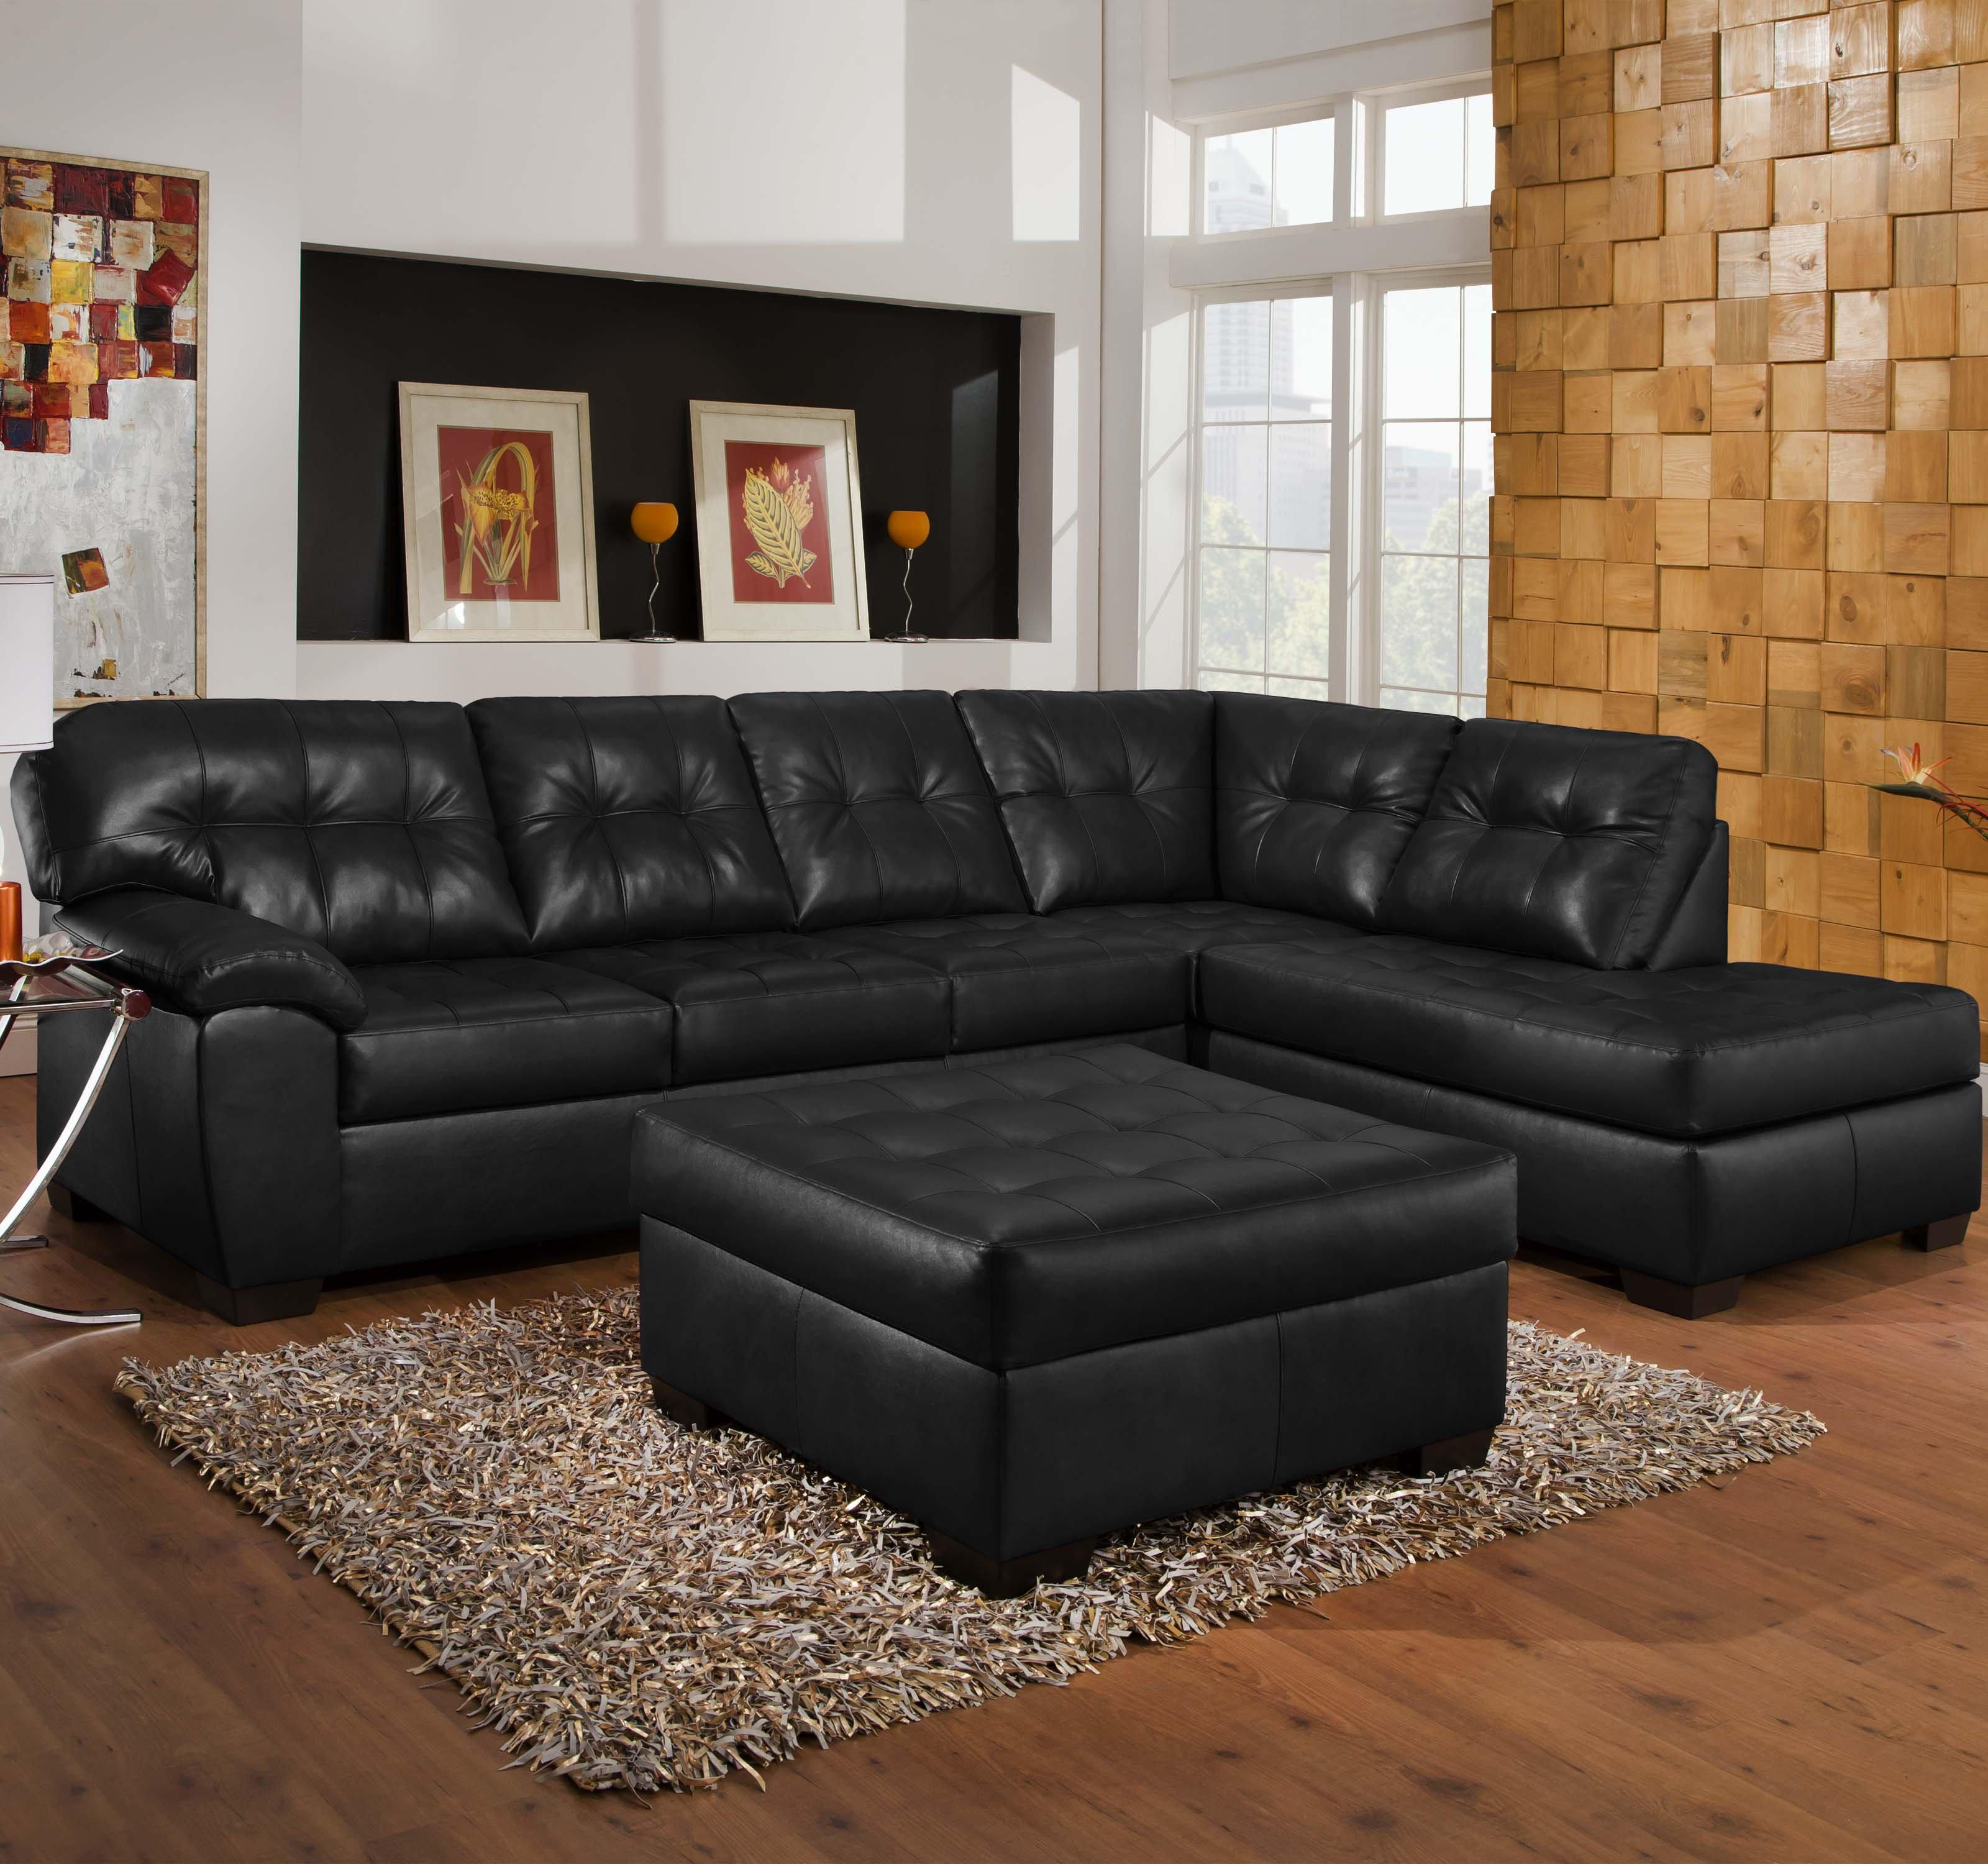 Simmons Upholstery 9569 2 Piece Sectional - Item Number: 9569O Sofa+Chaise